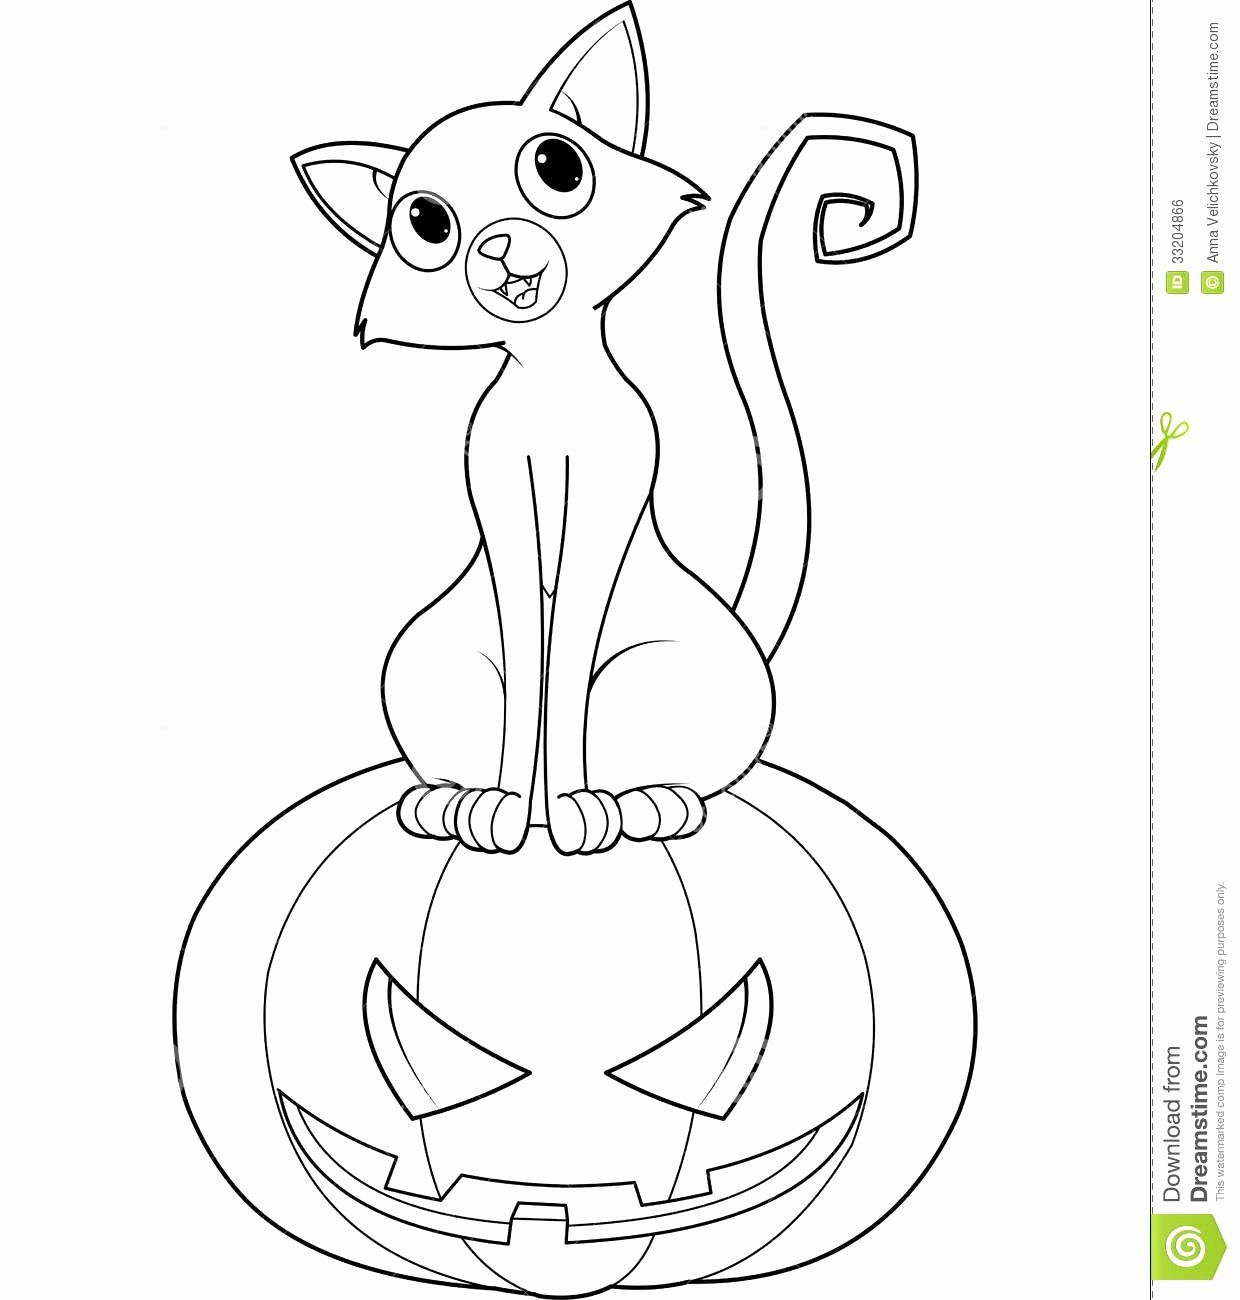 Halloween Pumpkins Coloring Sheets Beautiful Inspirational Halloween Cats Coloring Pages Lovespells Halloween Coloring Pages Kitty Coloring Cat Coloring Page